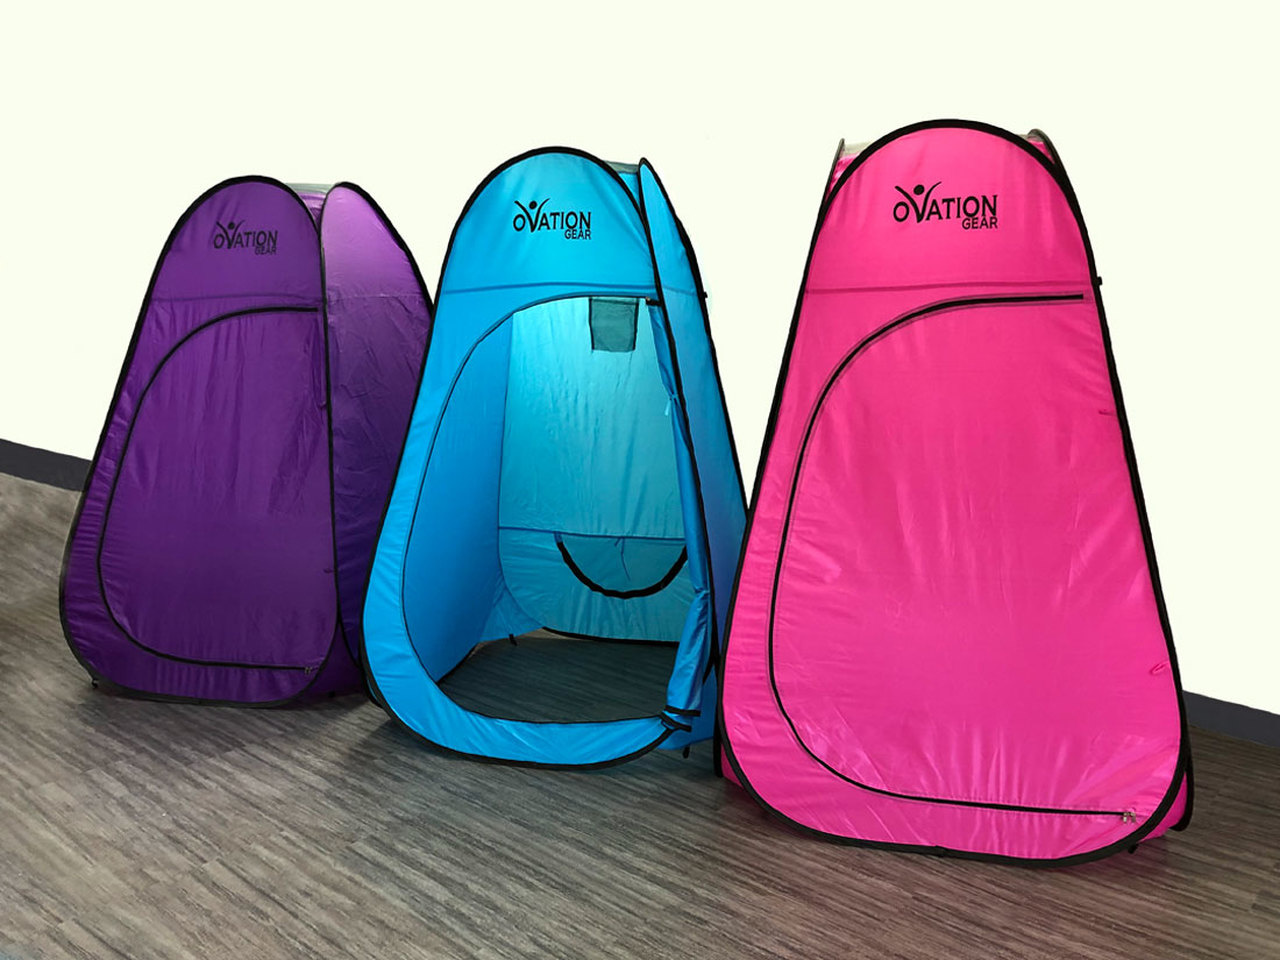 Ovation Gear Pop-Up Changing Tent